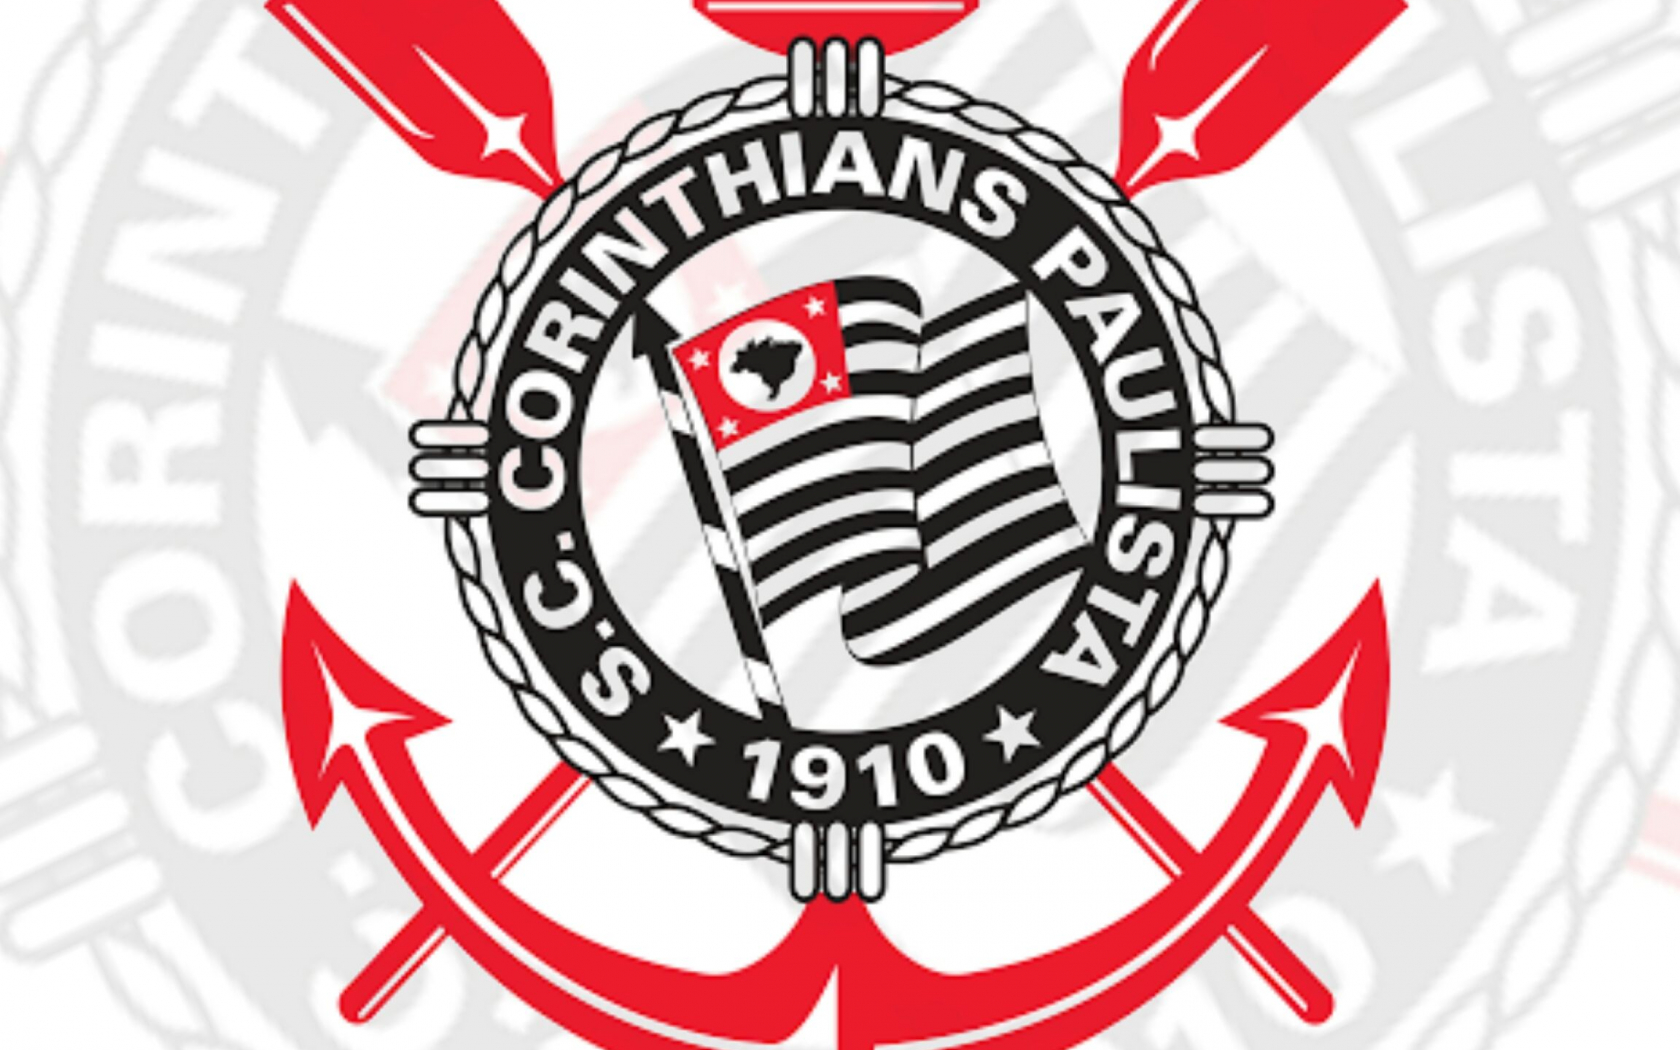 Free download Wallpaper para celular papel de parede Corinthians timo  [2304x4094] for your Desktop, Mobile & Tablet | Explore 37+ Corinthians  Wallpapers | Corinthians Wallpapers, 1 Corinthians 13 Wallpaper,